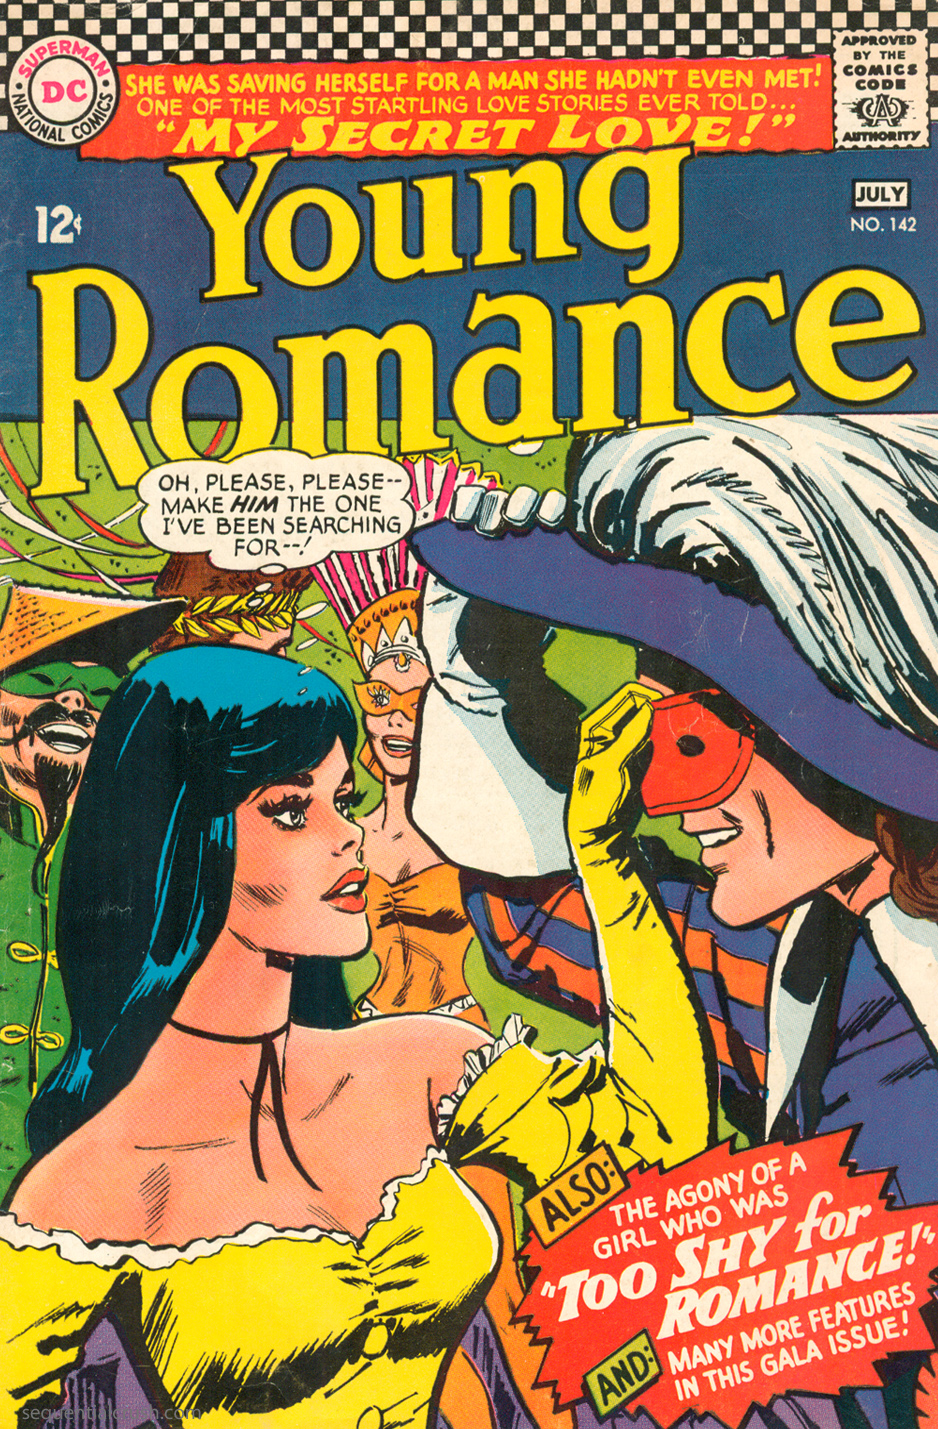 Young Romance  #142 (June/July 1966) Pencils: Jay Scott Pike